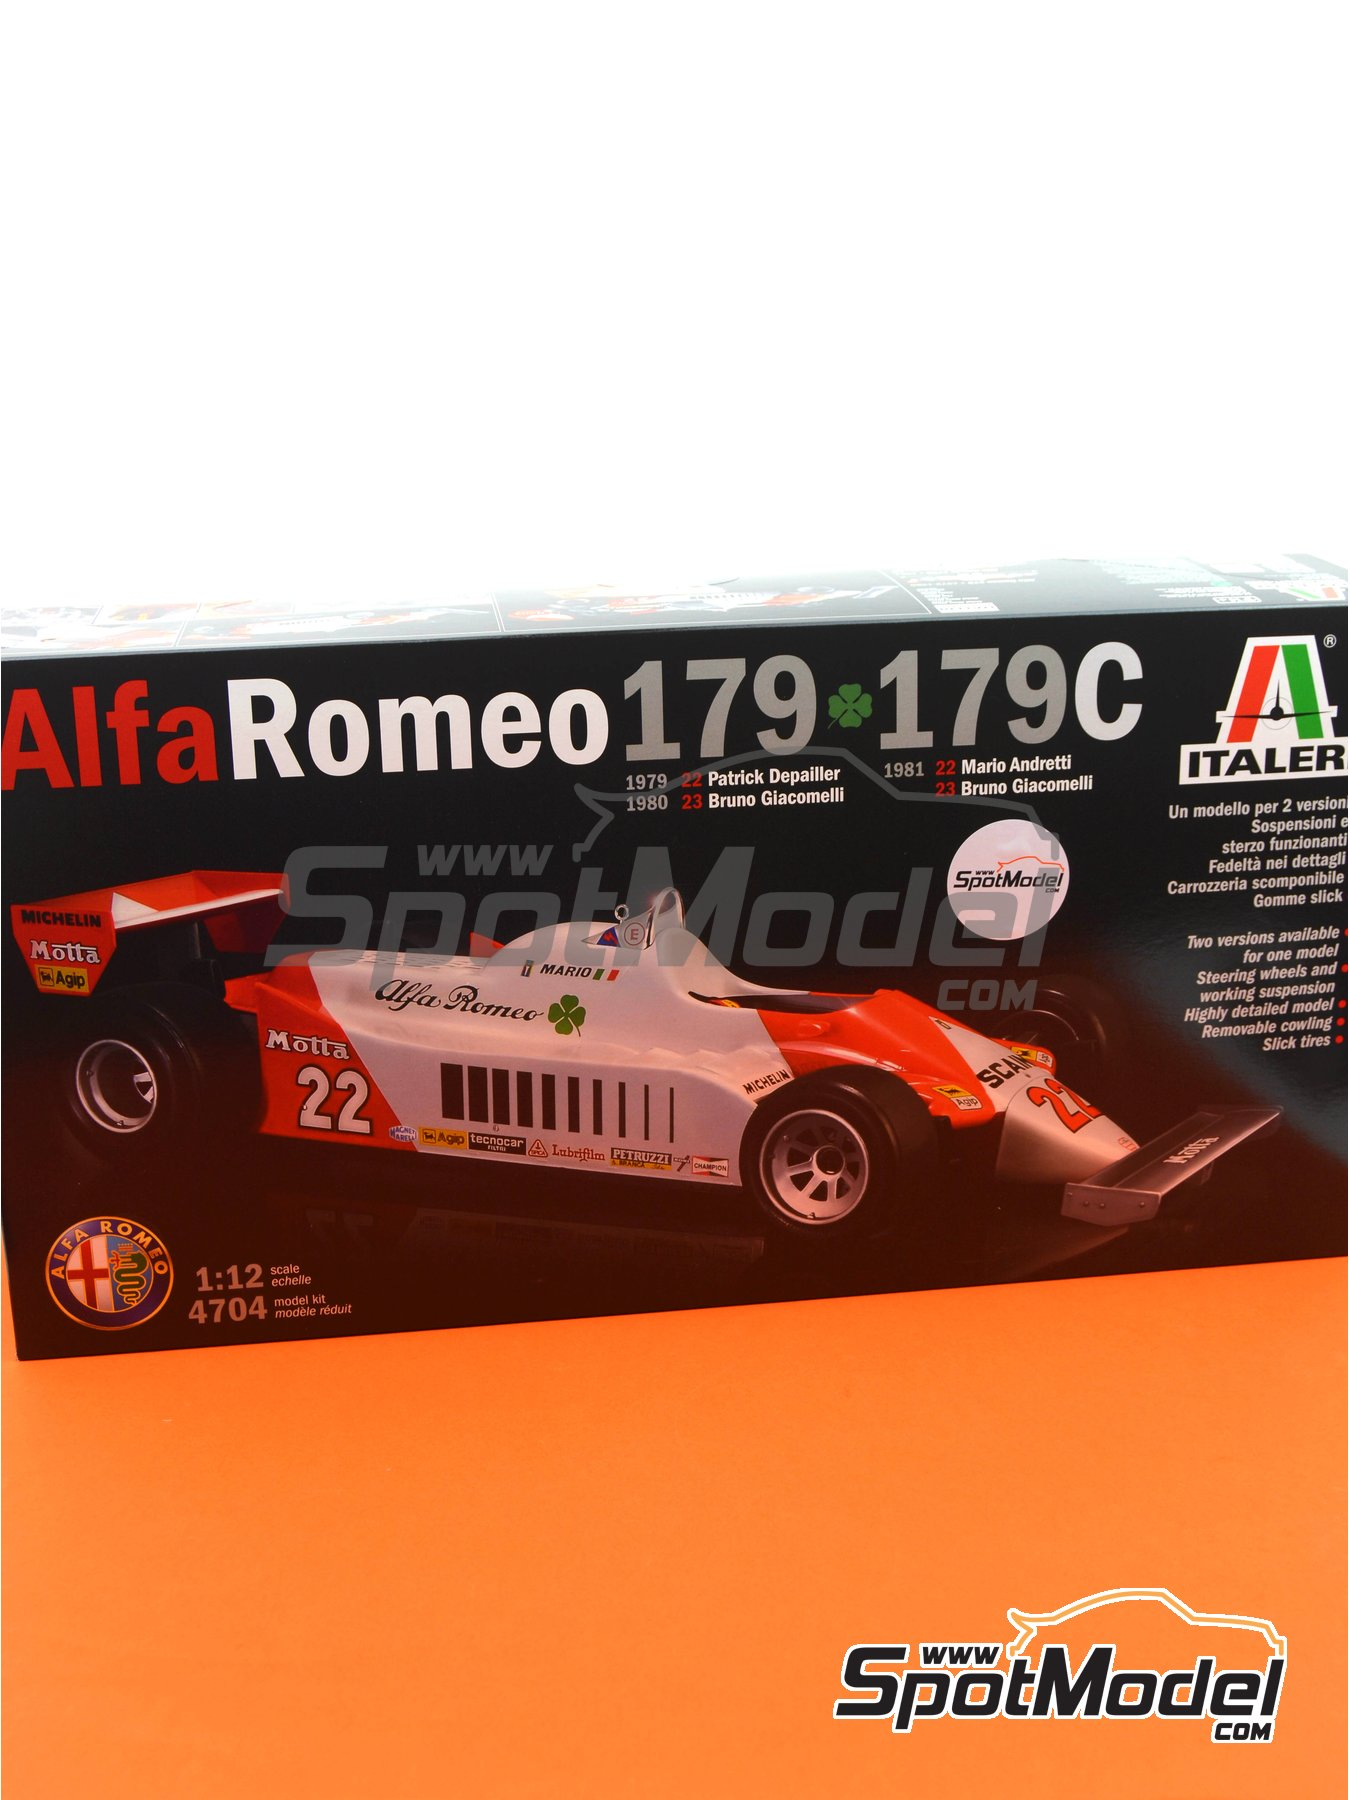 Alfa Romeo 179 and 179C Marlboro - FIA Formula 1 World Championship 1979, 1980 and 1981 | Model car kit in 1/12 scale manufactured by Italeri (ref. 4704) image